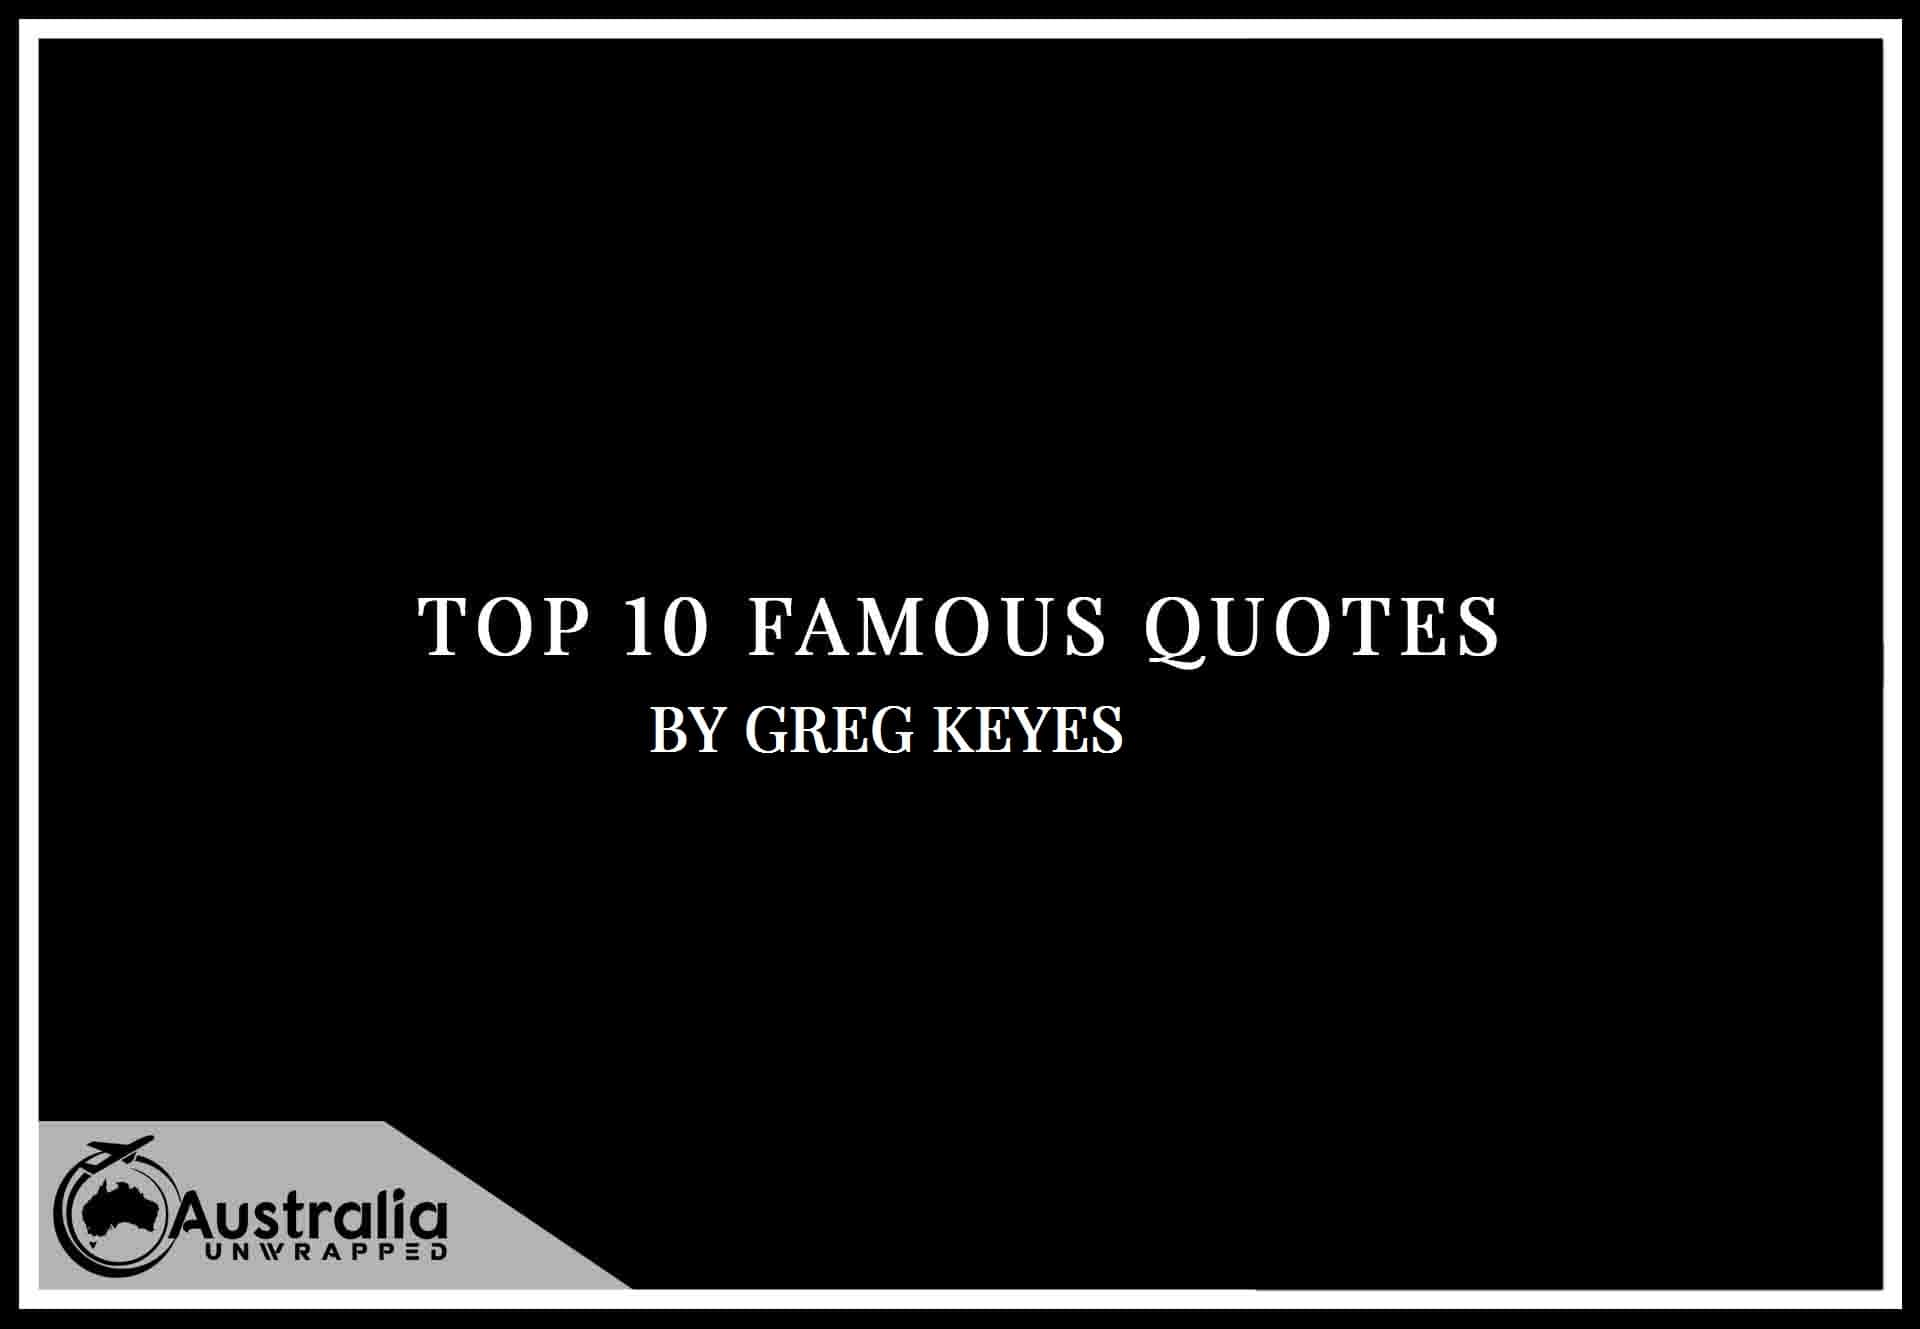 Greg Keyes's Top 10 Popular and Famous Quotes